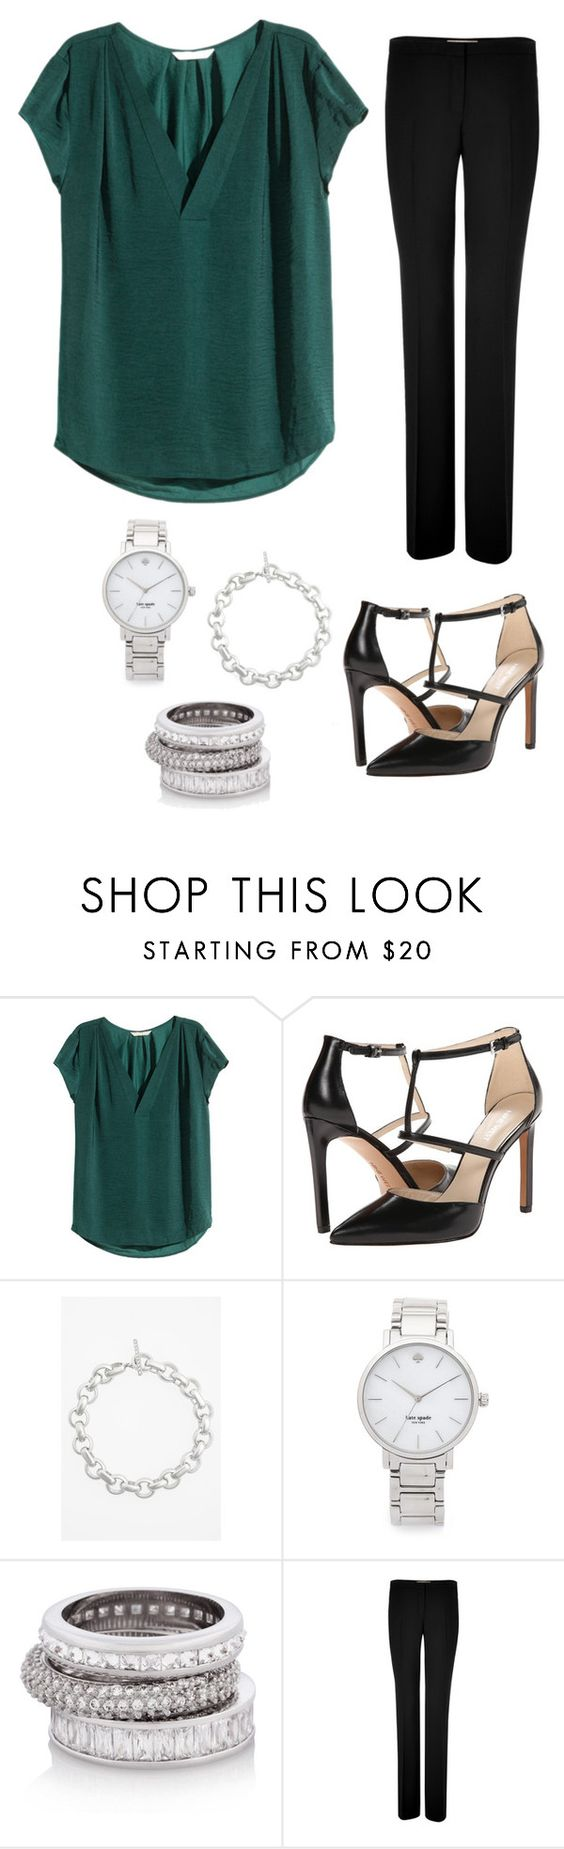 """""""Green top - Work"""" by brittjade ❤ liked on Polyvore featuring мода, H&M, Nine West, Judith Jack, Kate Spade, Henri Bendel и Michael Kors"""